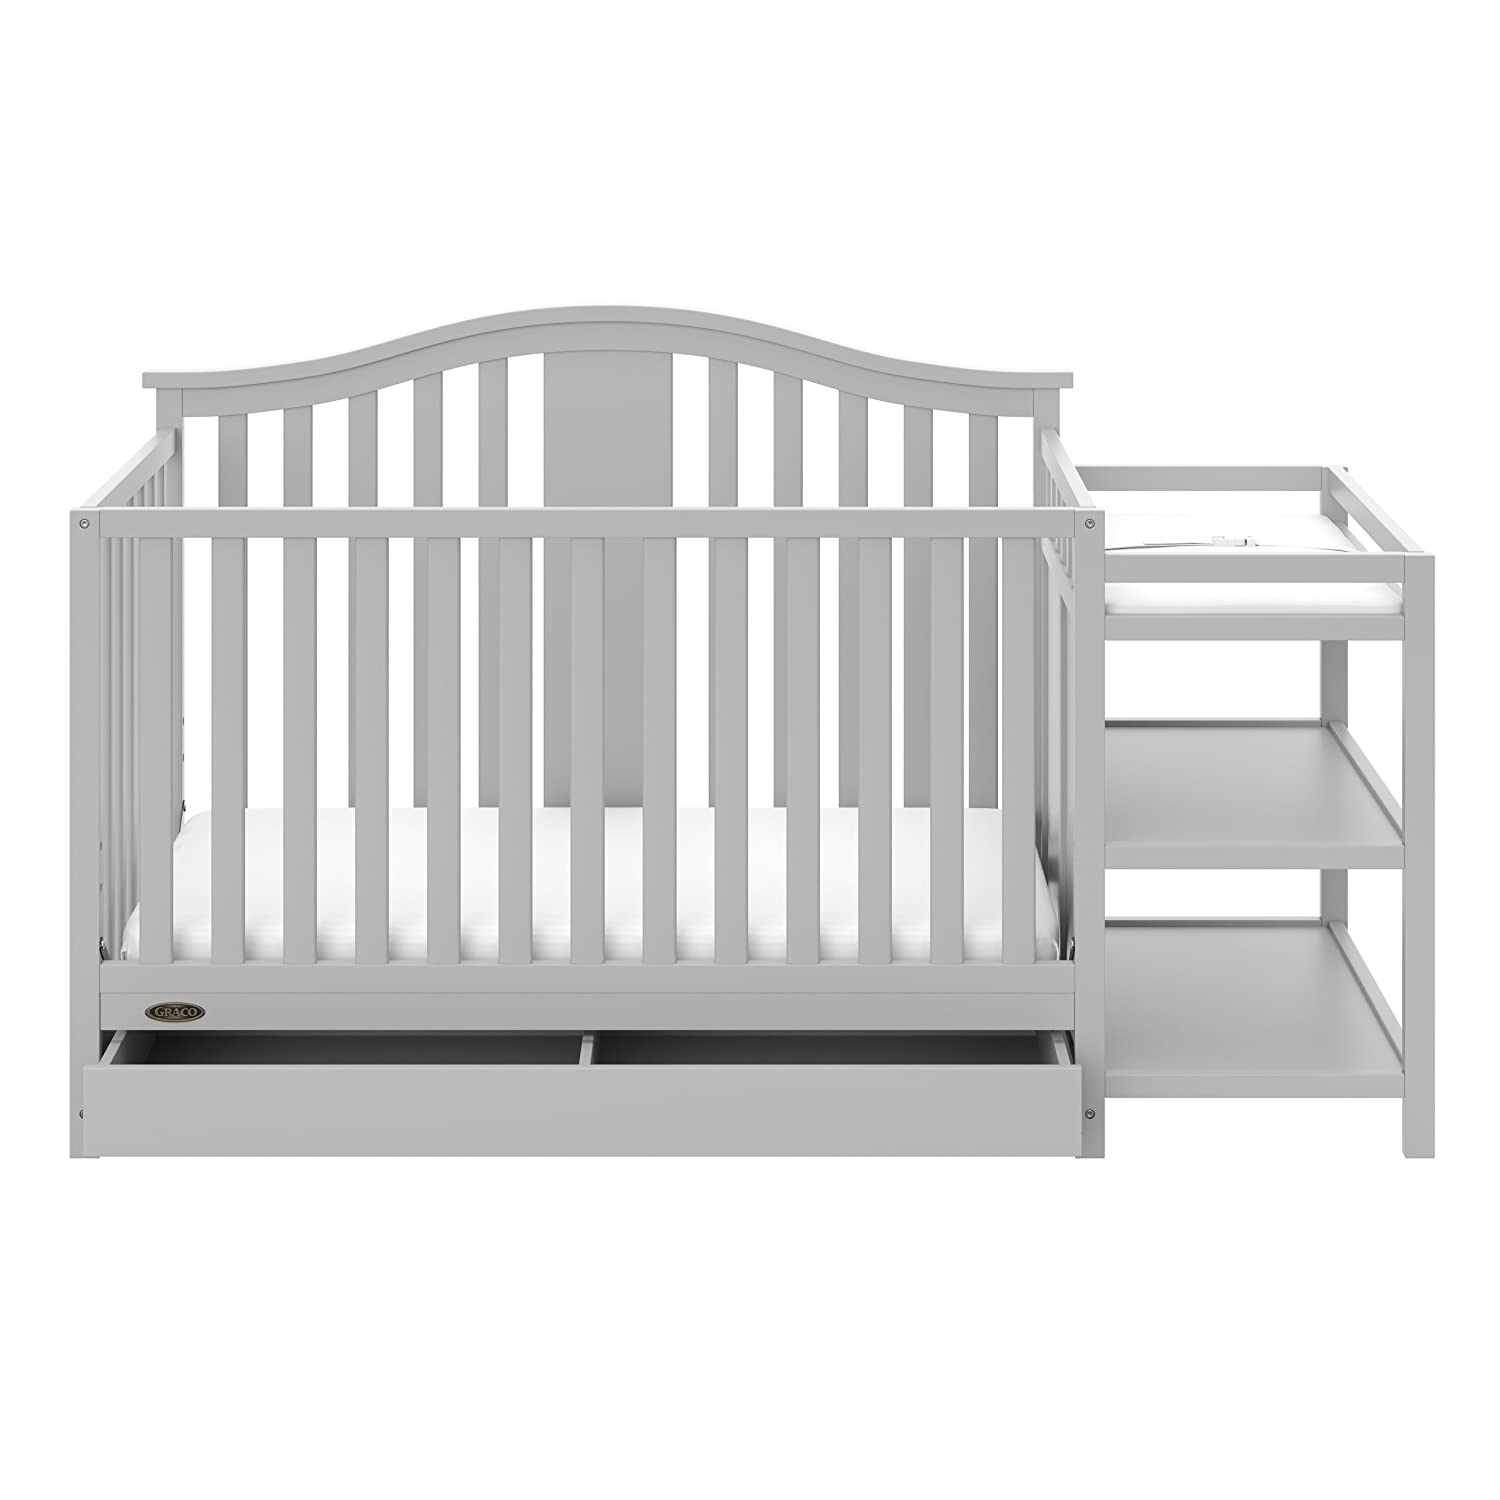 Graco Solano 4-in-1 Convertible Crib and Changer with Drawer Pebble Gray, Fixed Side Crib, Solid Pine and Wood Product Construction, Converts to Toddler Bed Day Bed Full Bed (Mattress Not Included)